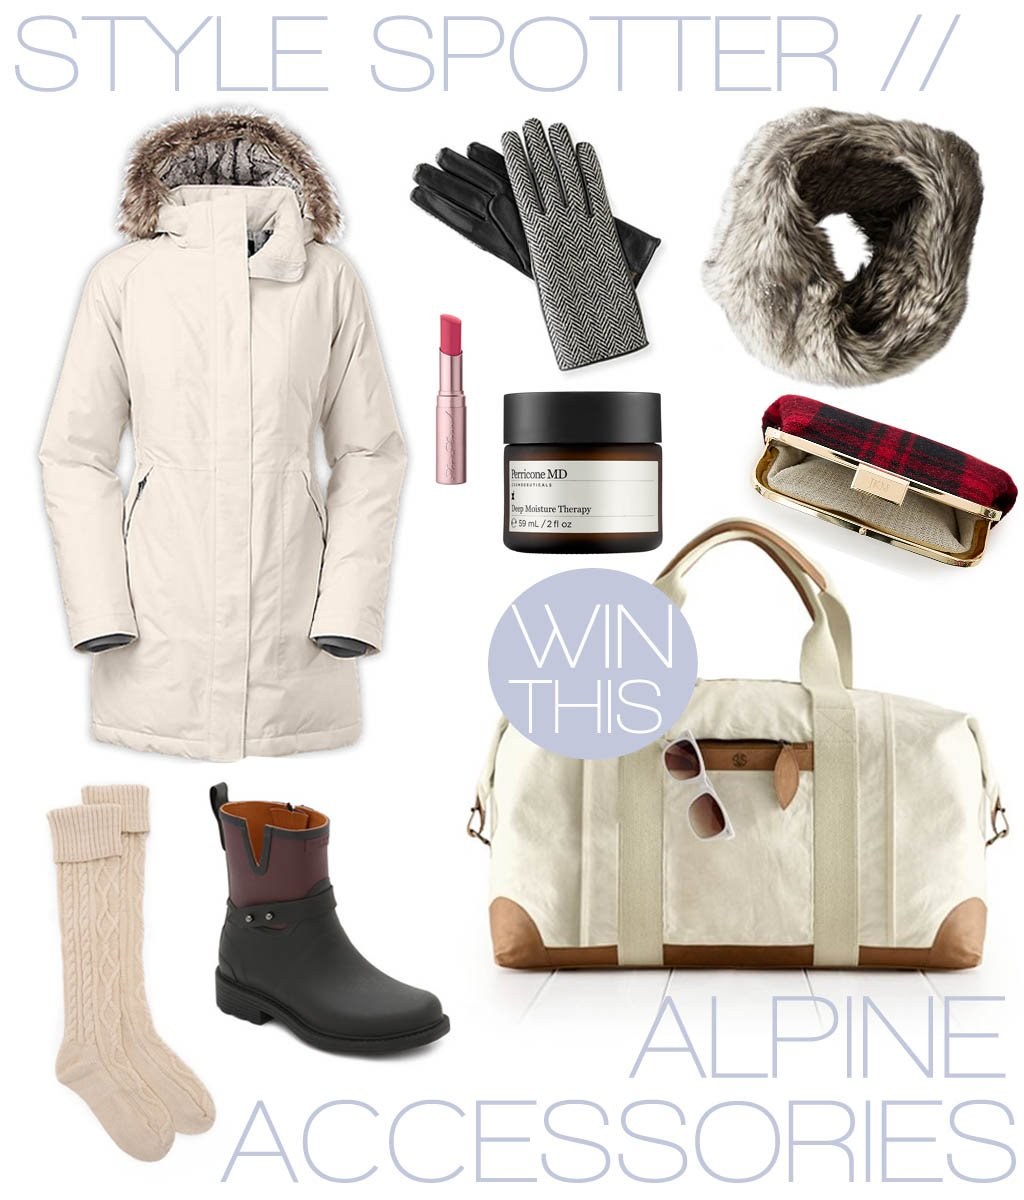 NEW! our alpine weekend essentials + the chance to win a @markandgraham weekender! https://t.co/nx4li9yghR #giveaway https://t.co/o1Le16pS5S